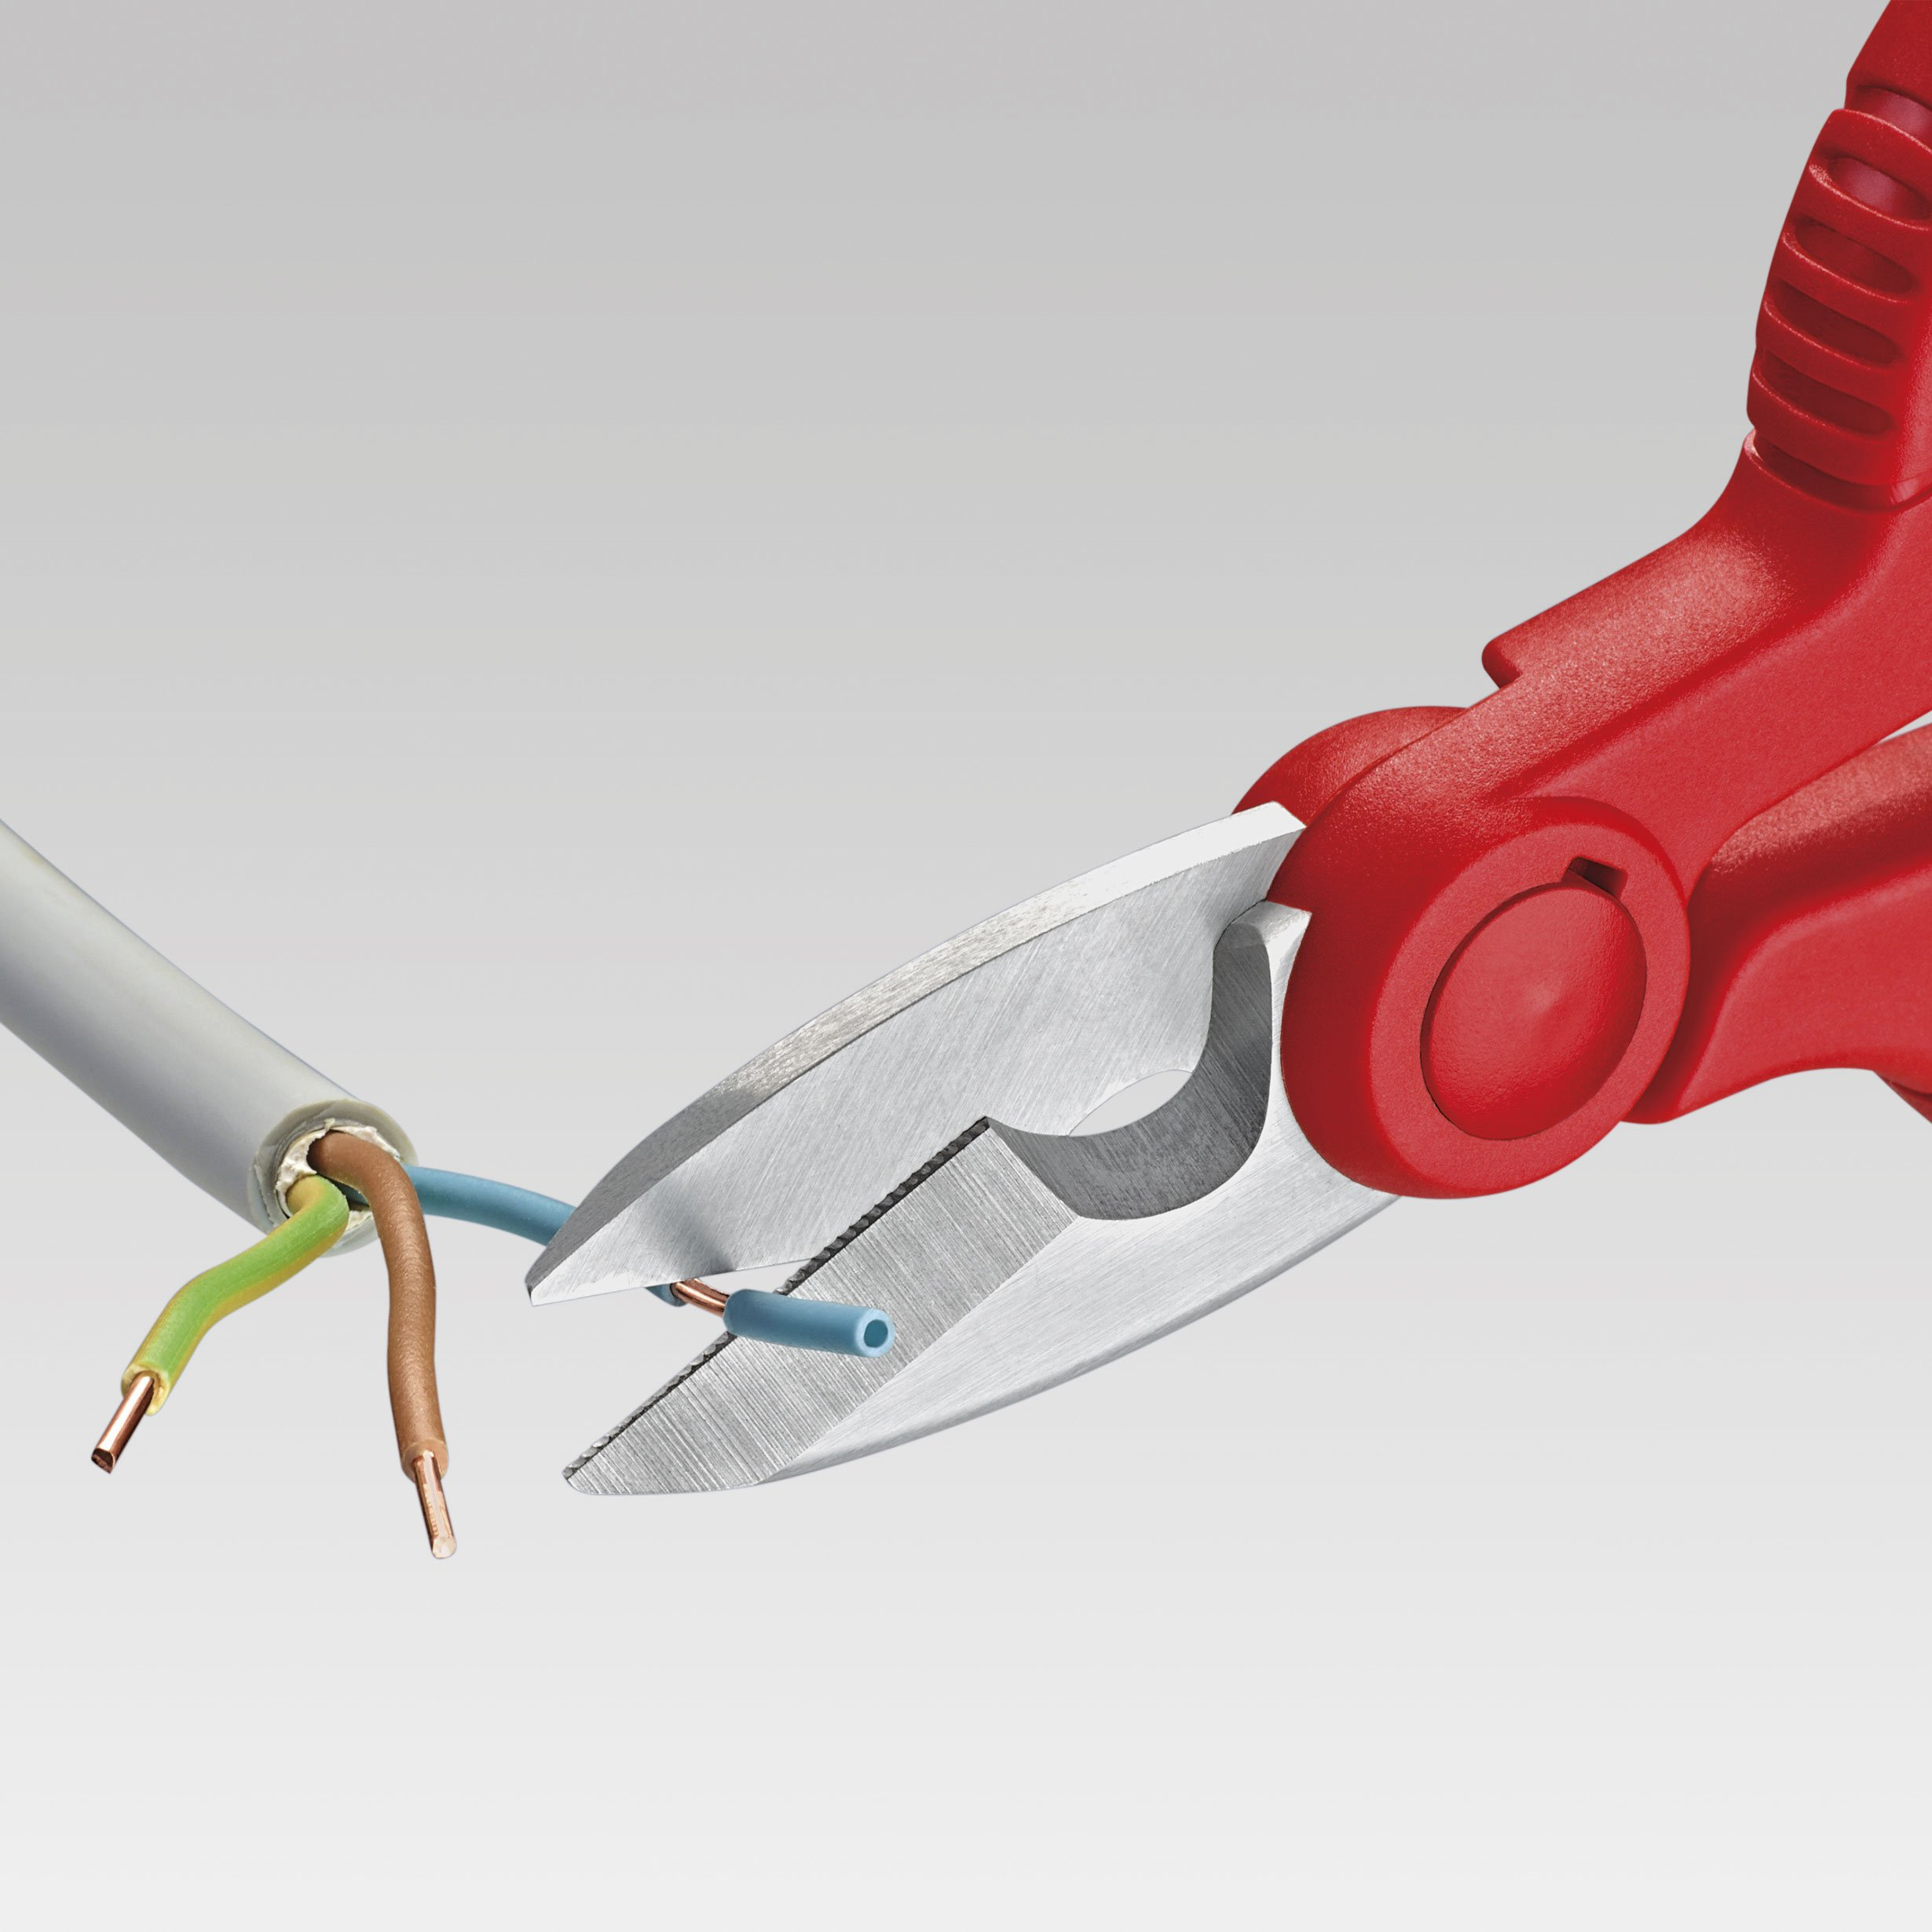 Knipex 95 05 155 SB Electrician's Shears 6,1'' by KNIPEX Tools (Image #5)